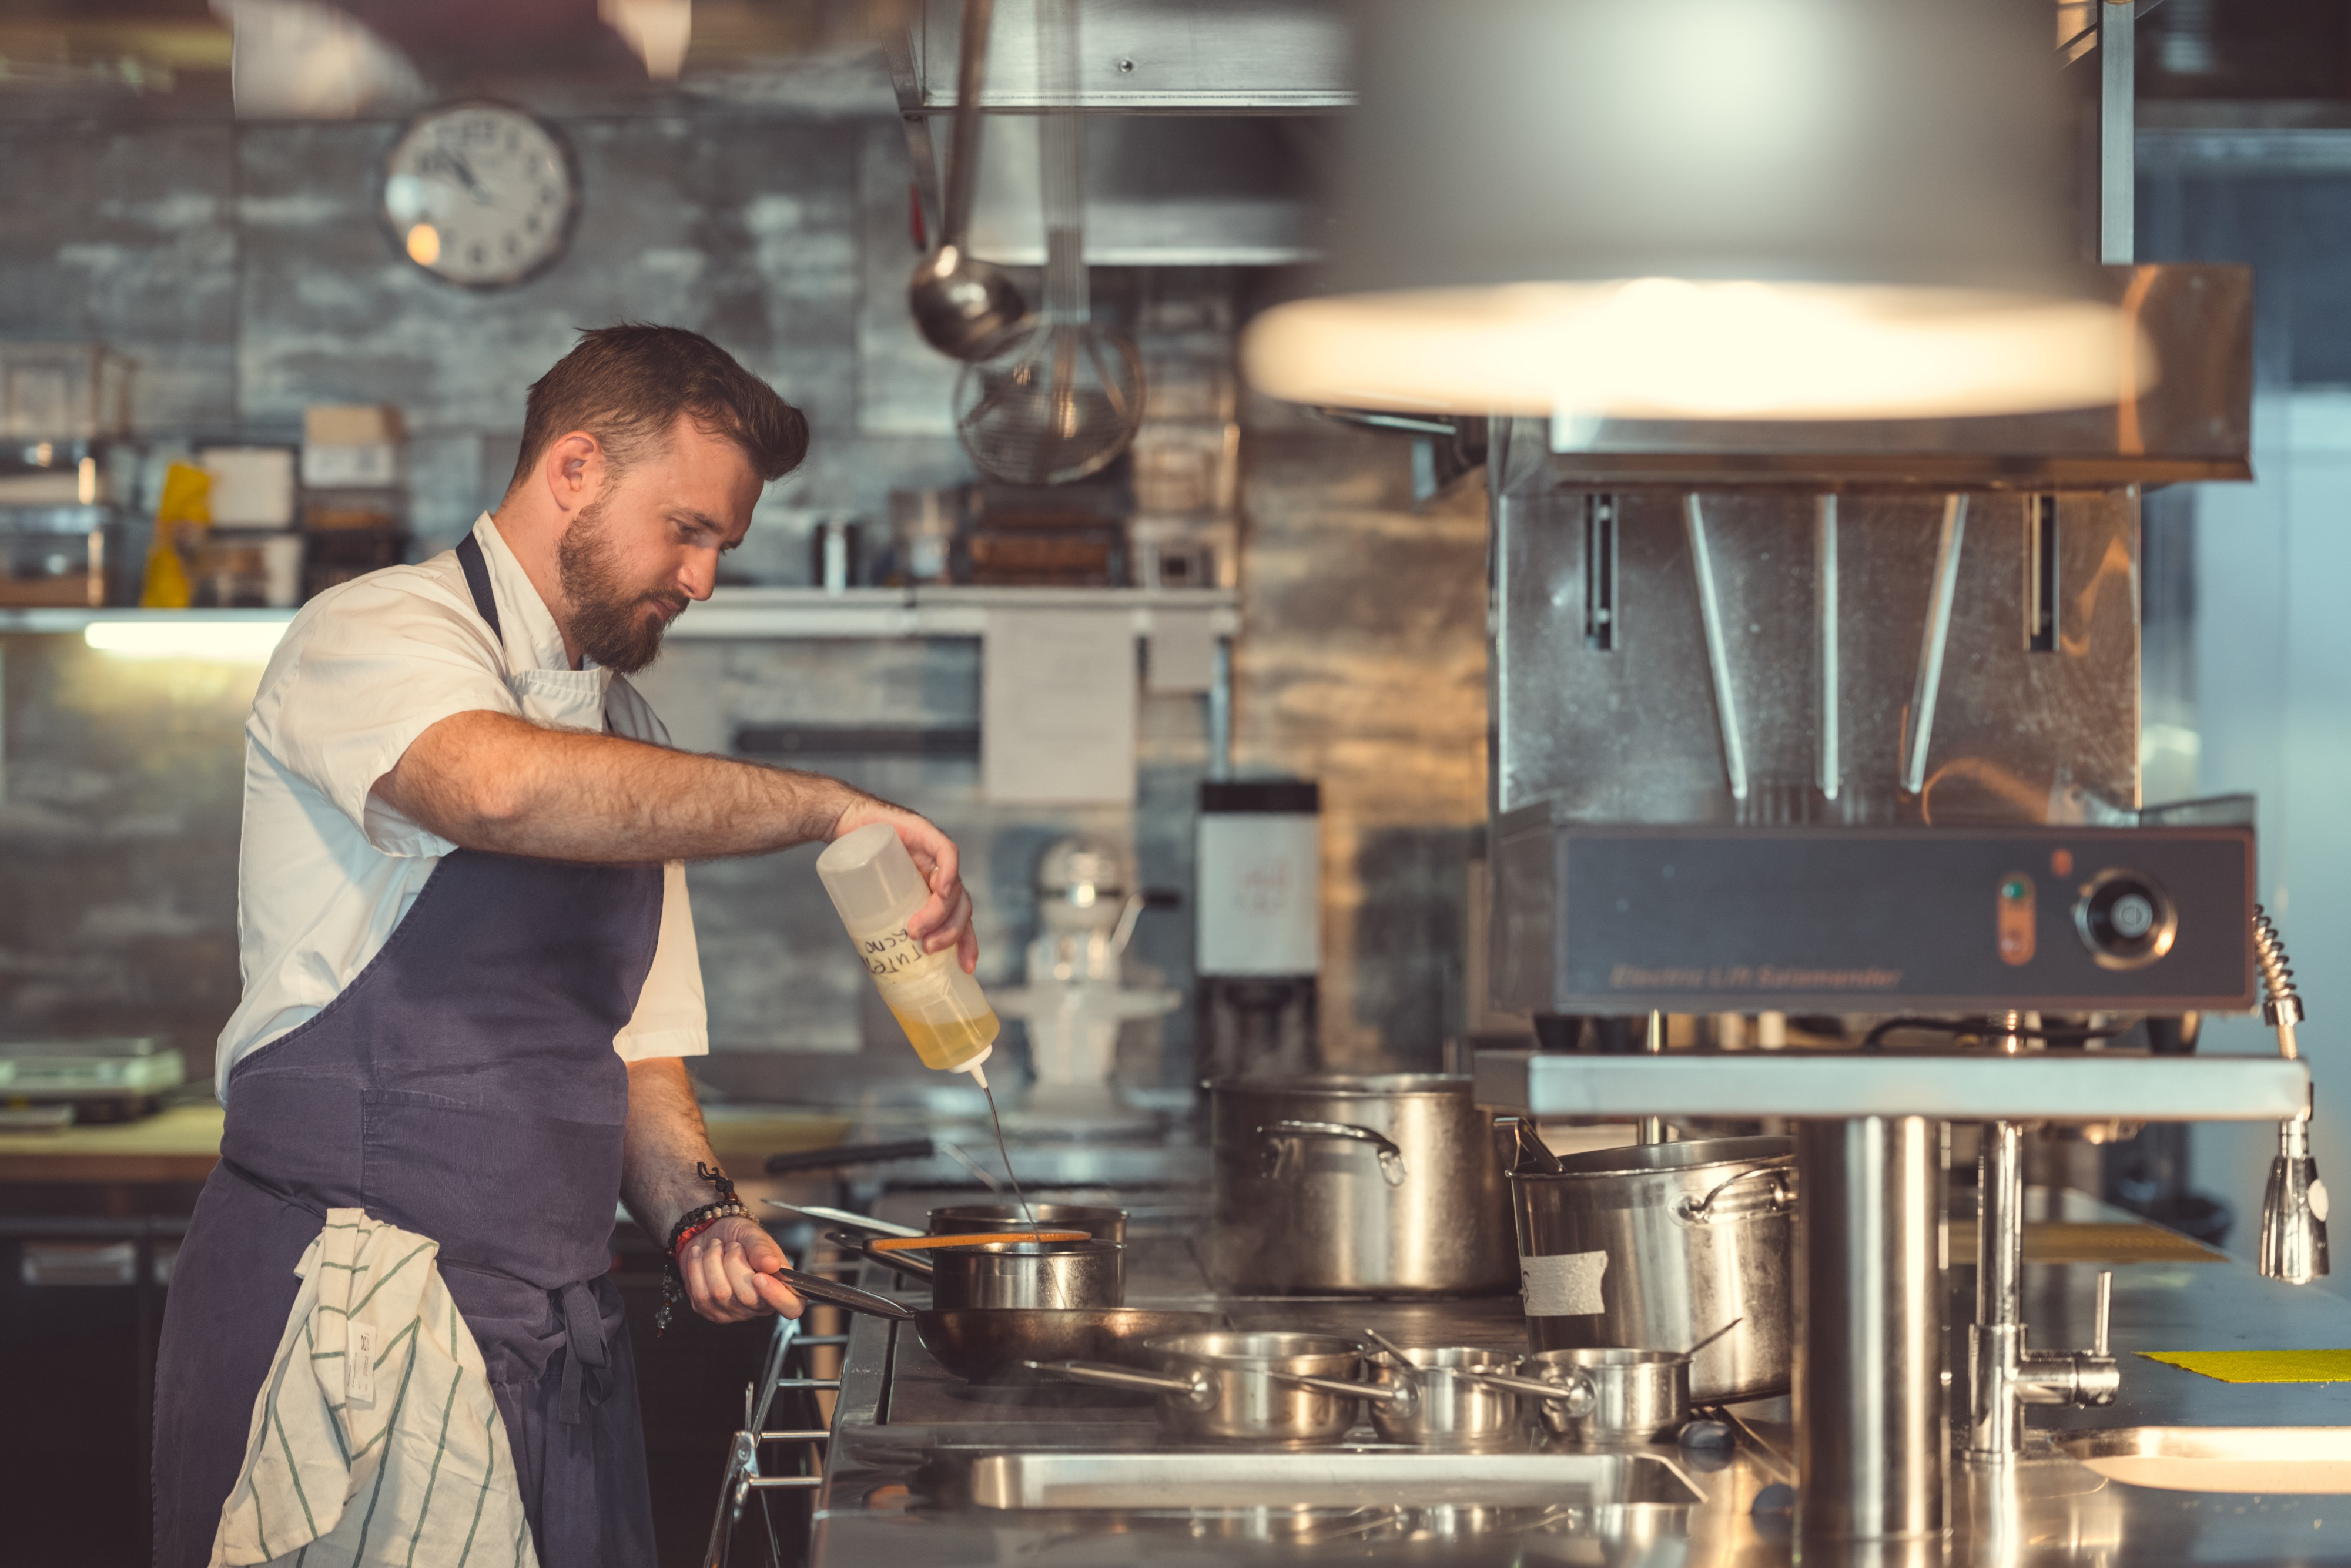 Shared Kitchens Are Coming To The Rescue Of Restaurants By Ingredients Shared Kitchens The Startup Medium